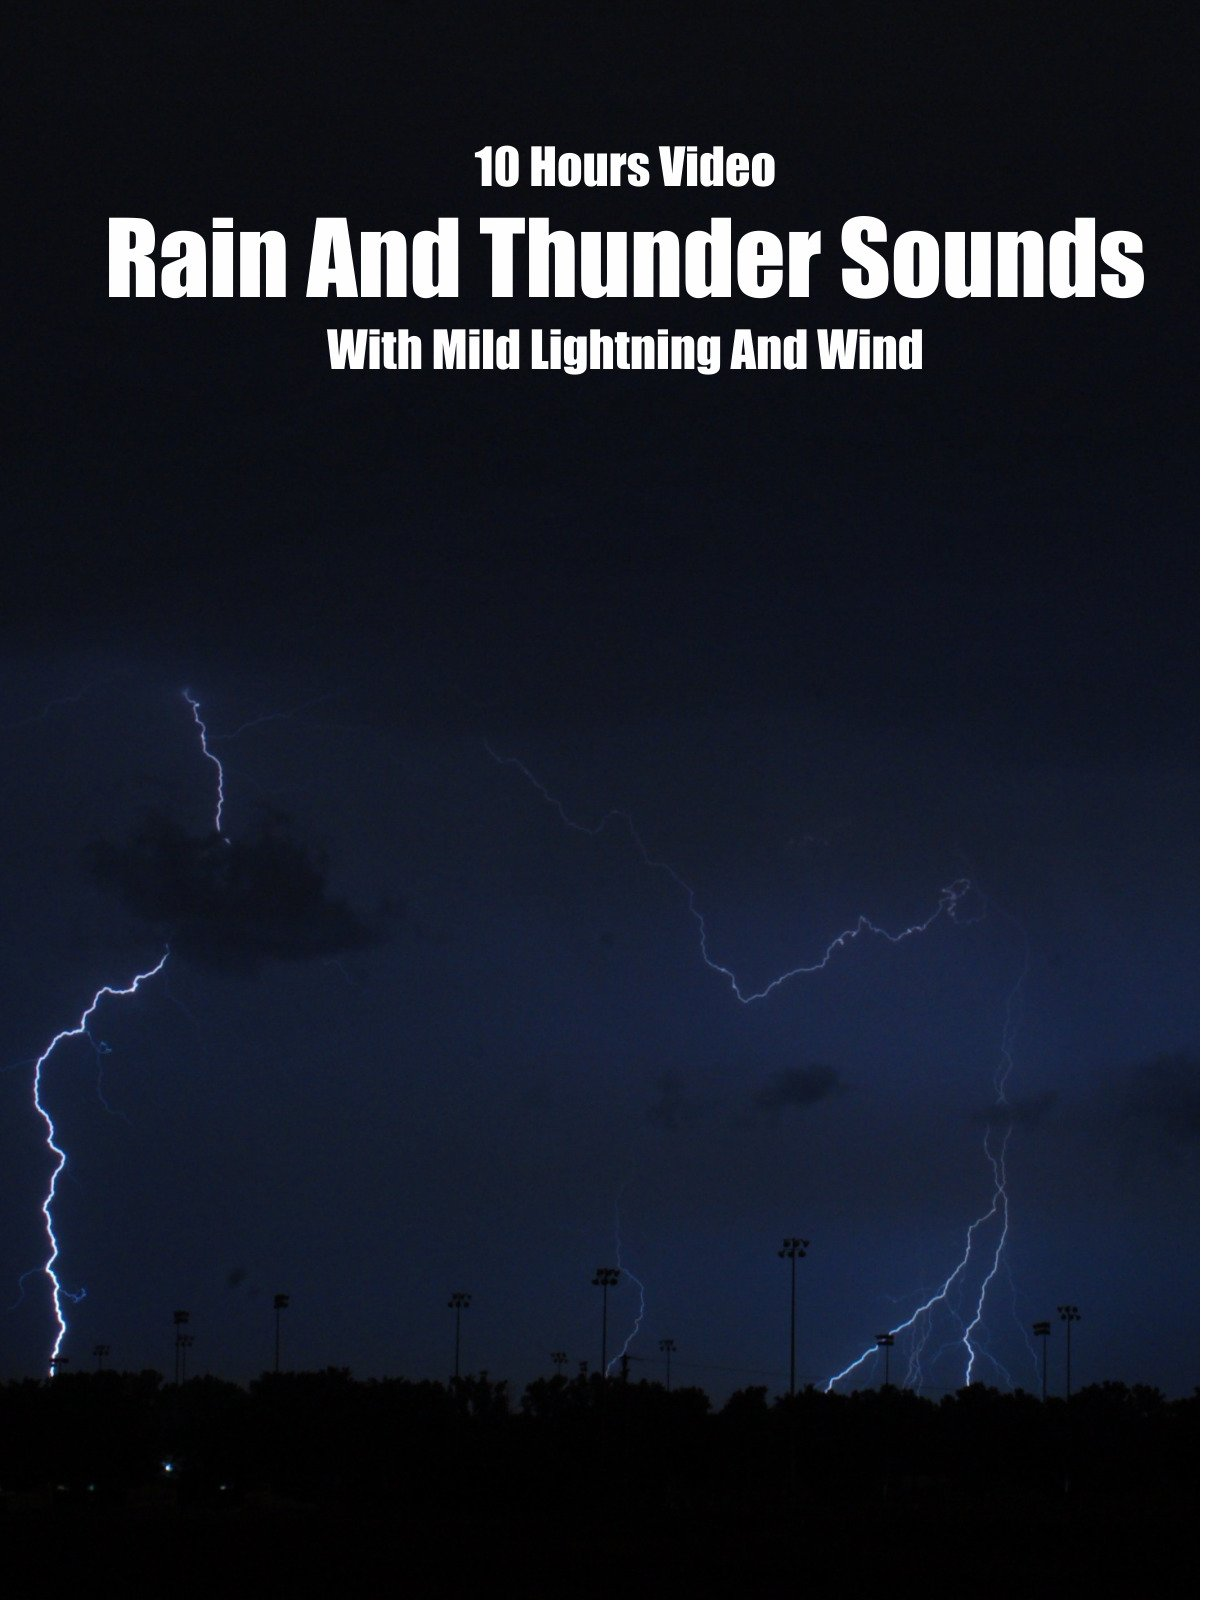 Rain and Thunder Sounds with Mild Lightning and Wind